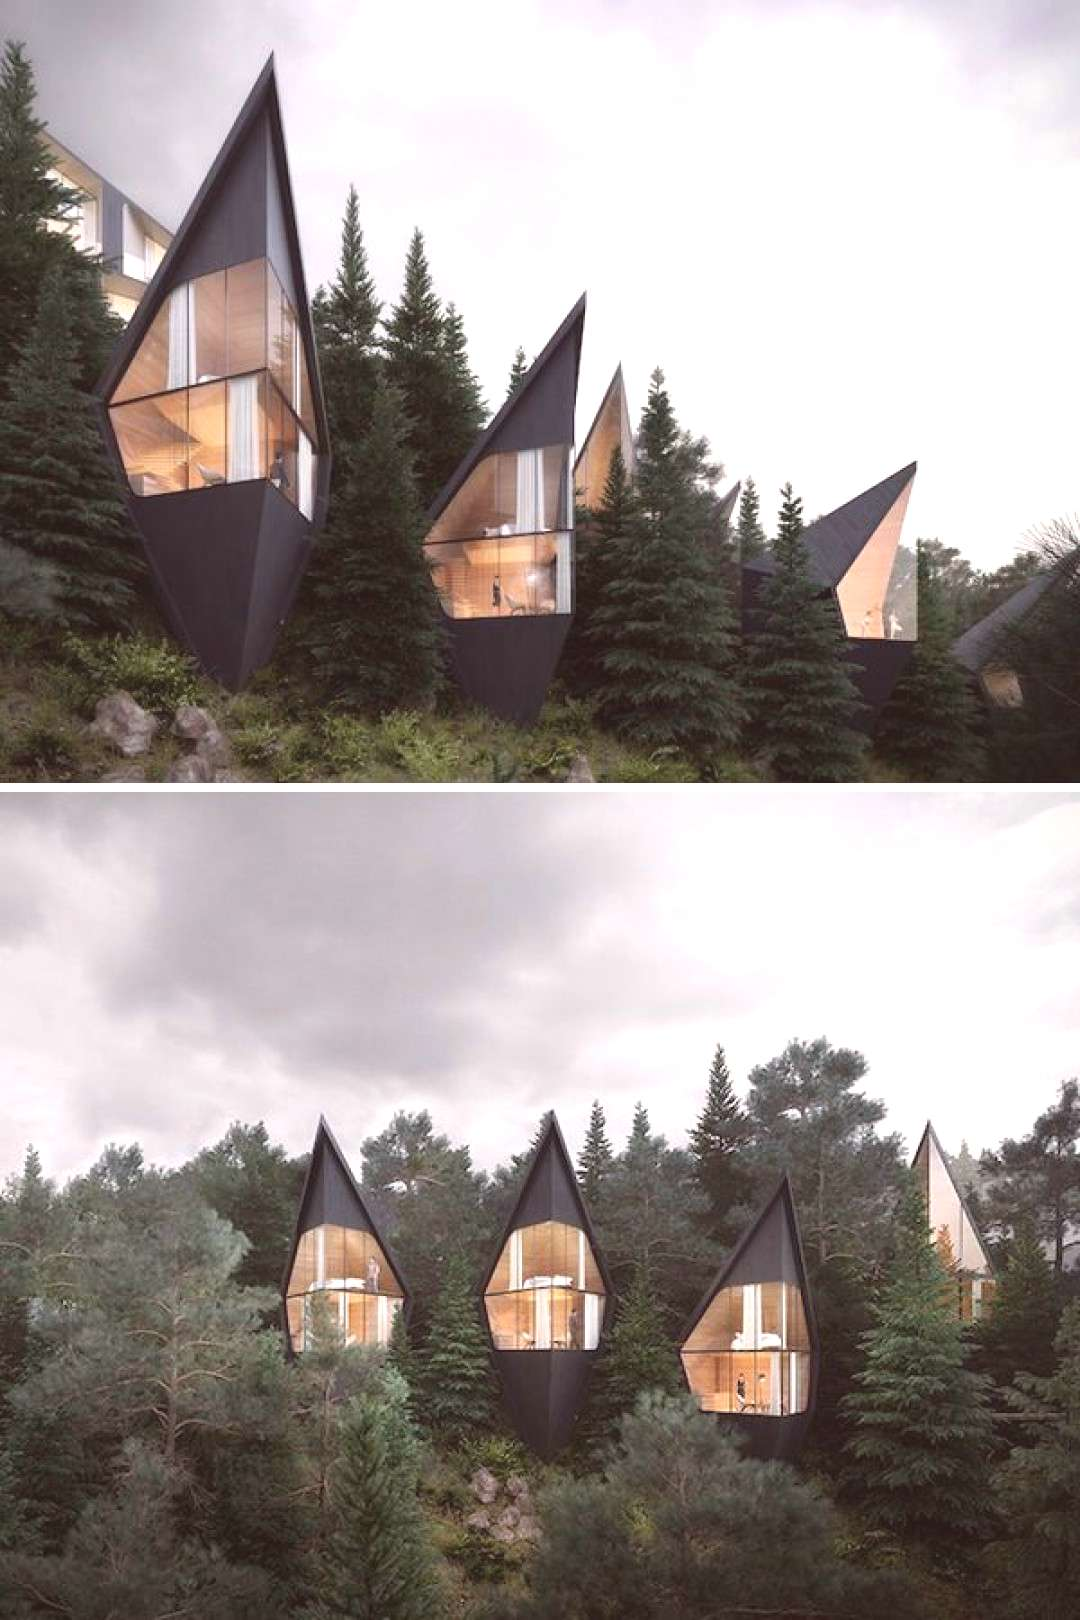 Prism shaped treehouses